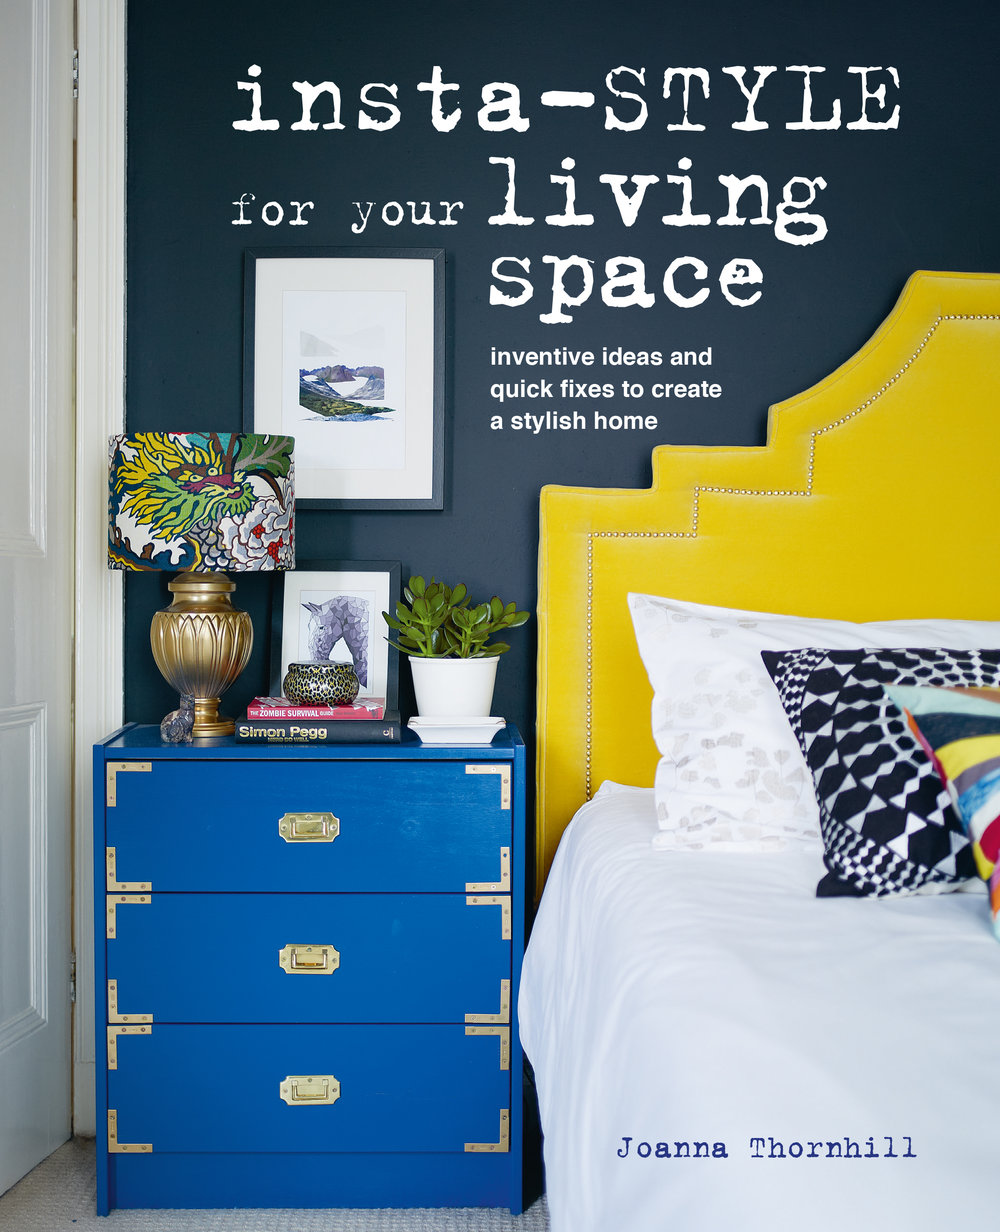 Insta Style for Your Living Space (CICO Books 2018)